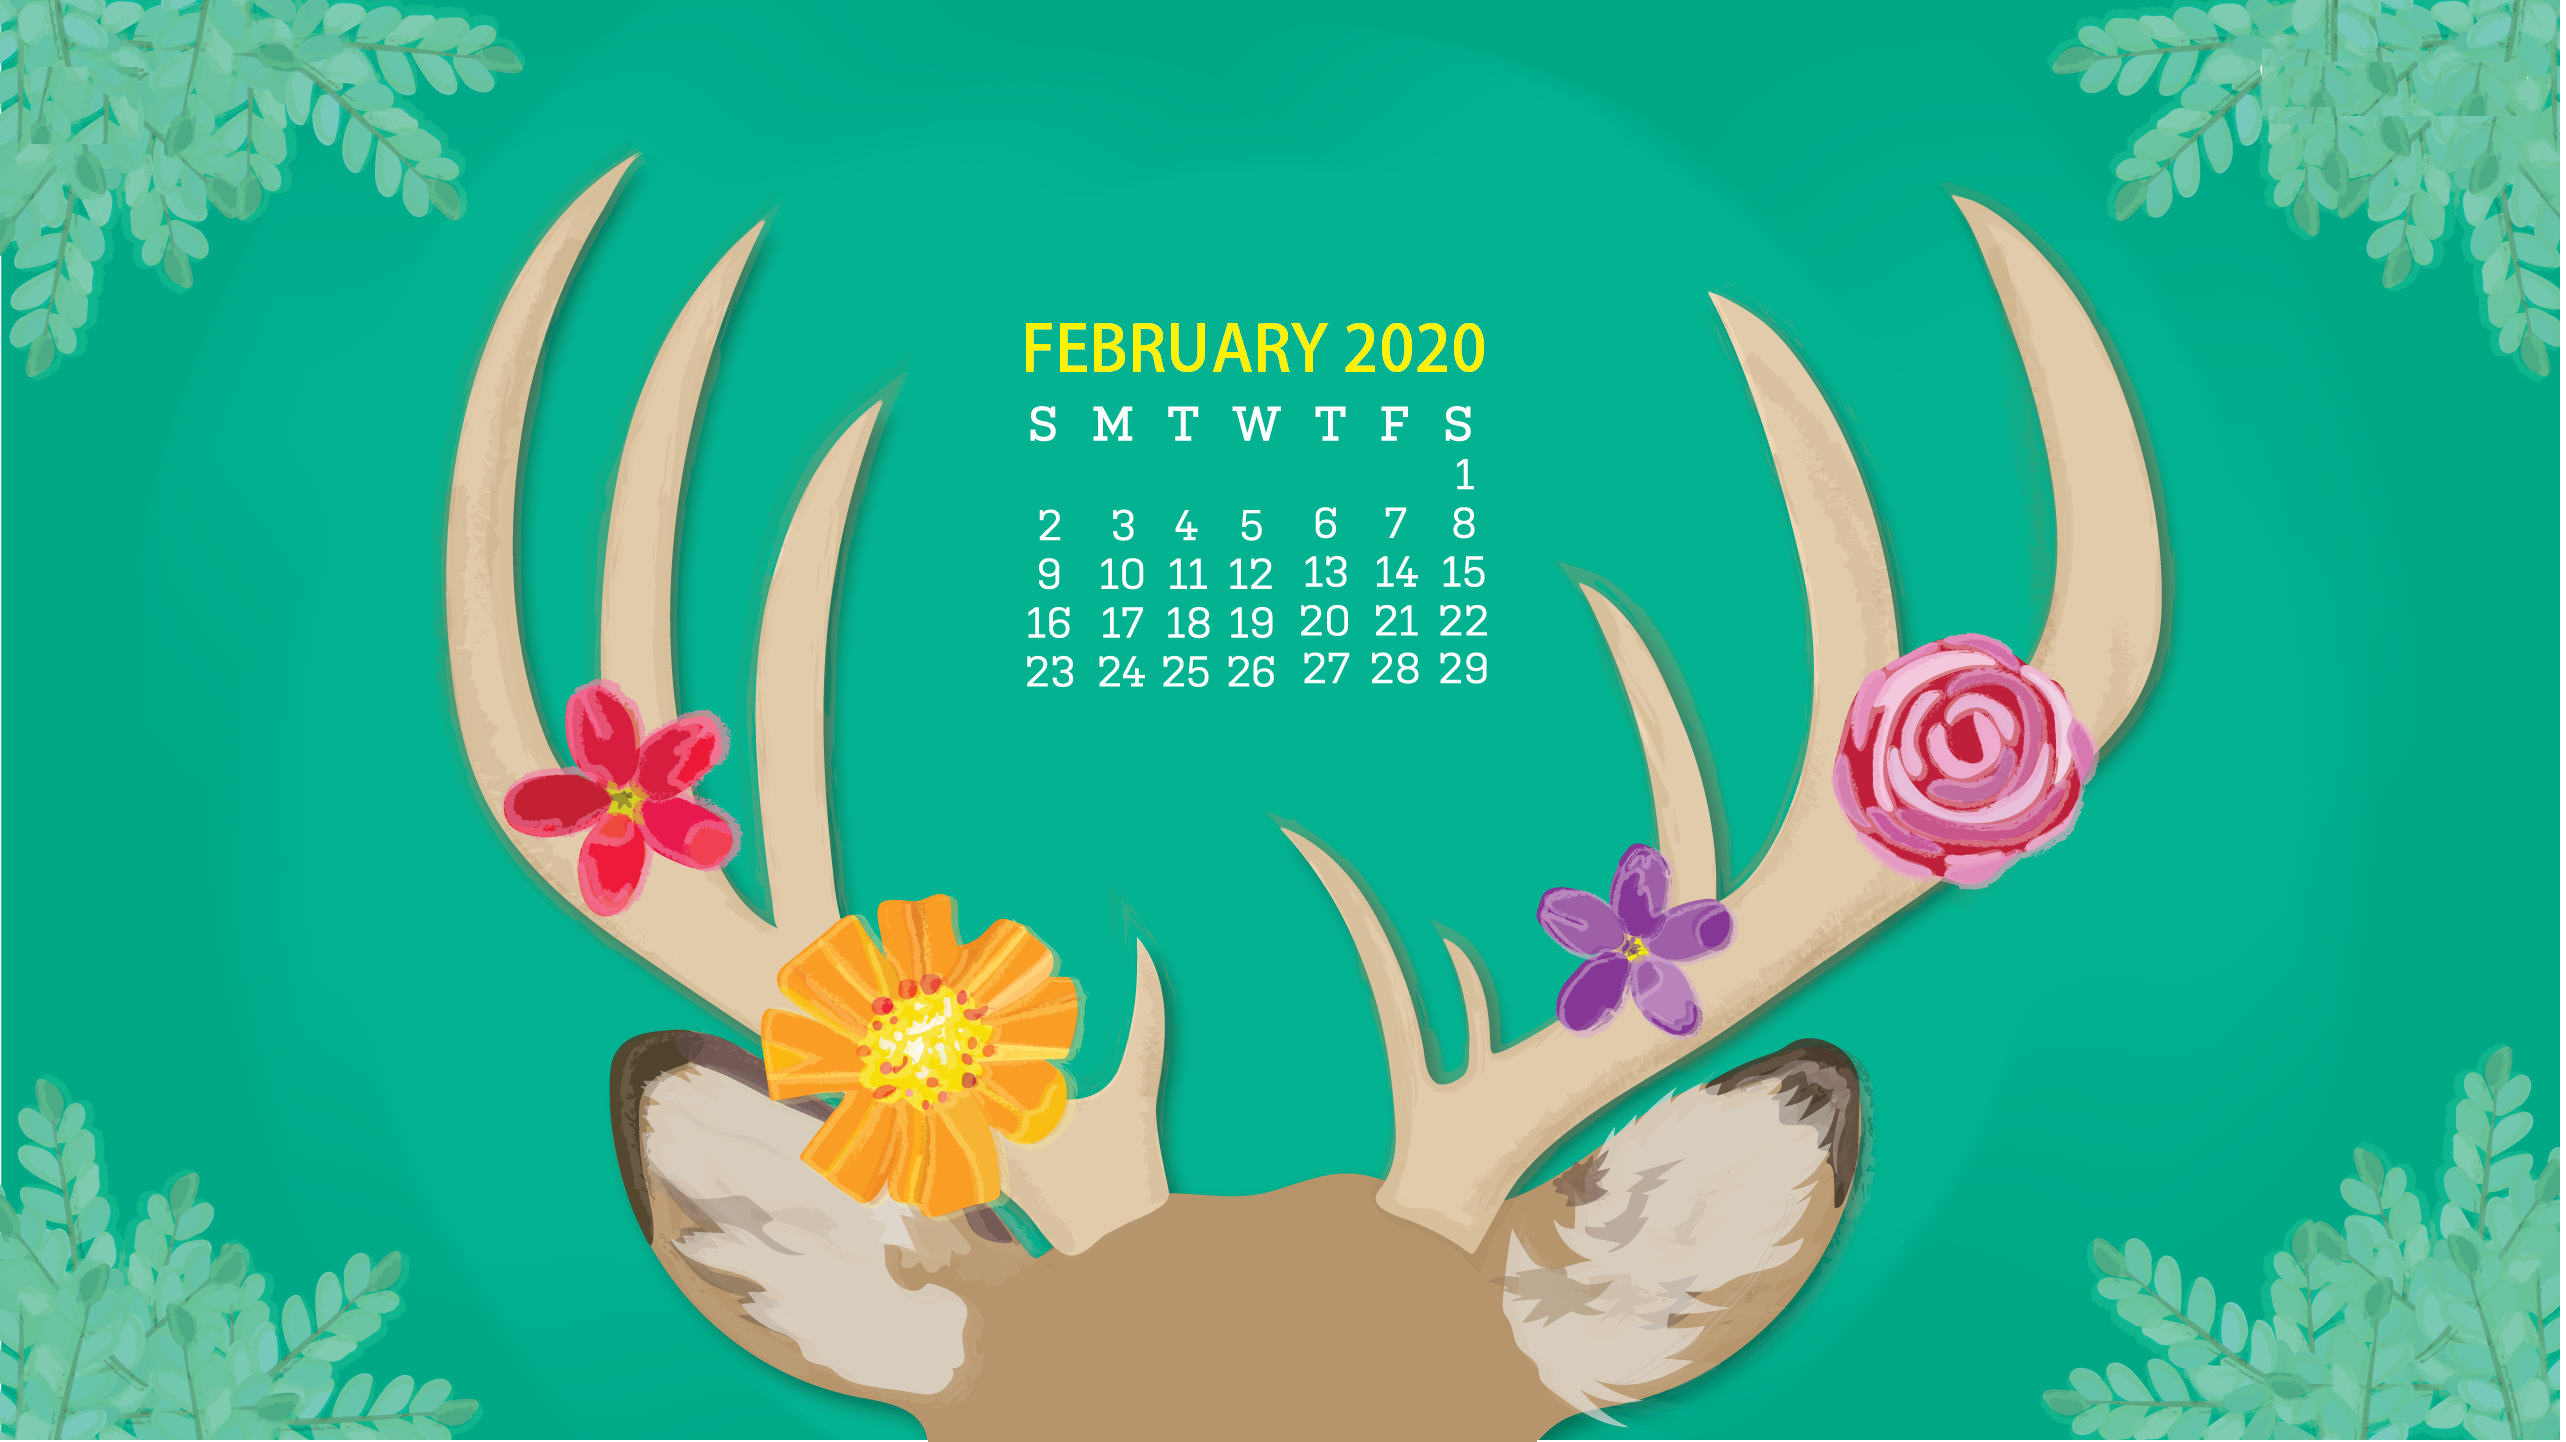 February 2020 Desktop Calendar Wallpaper